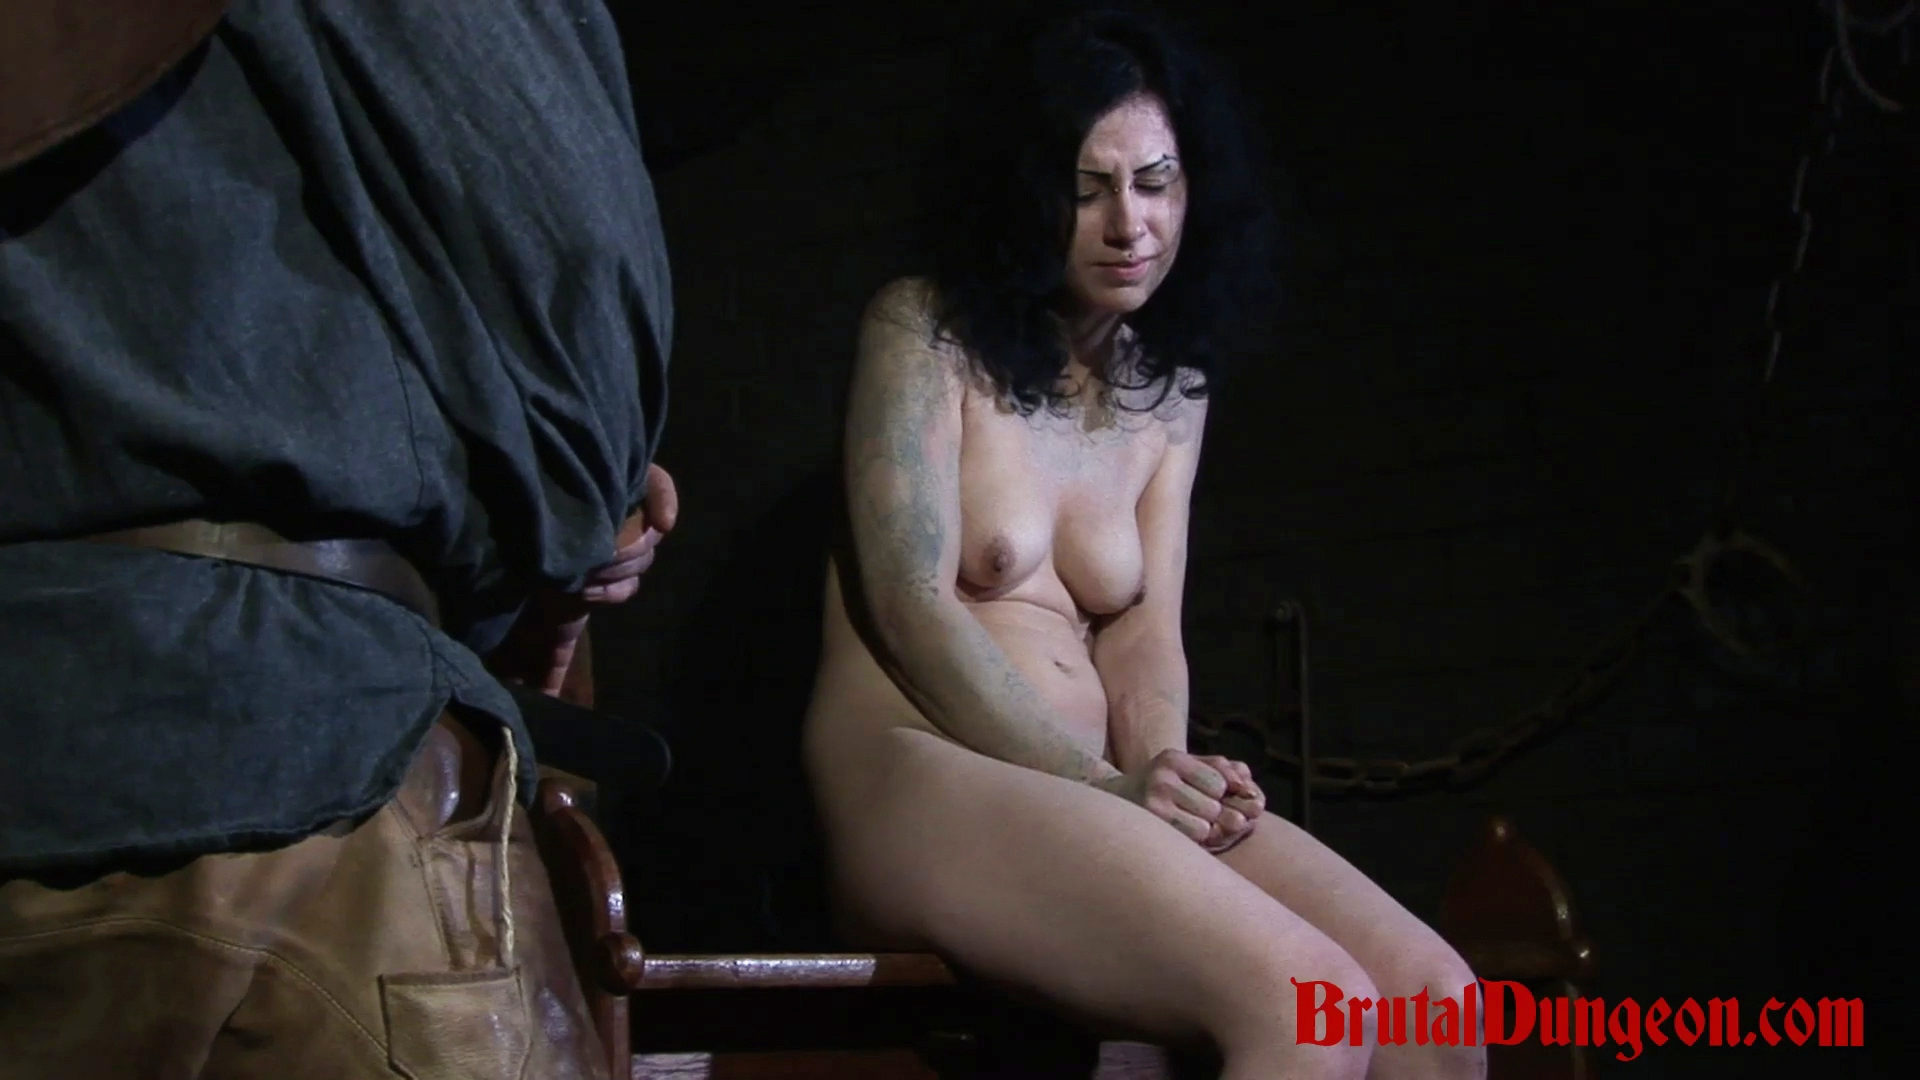 Brunette loredana bdsm gang bang. Brunette witch Loredana has been arrested and punish in our dungeon once a day. She begs for forgiveness and will do anything to earn freedom, even endure imprisonment, rope bondage, domination, BDSM fun, gang bang, clothespins play, weight hanging with a water pail, spanking, slapping, fingering, breast, nipple and pussy torment.